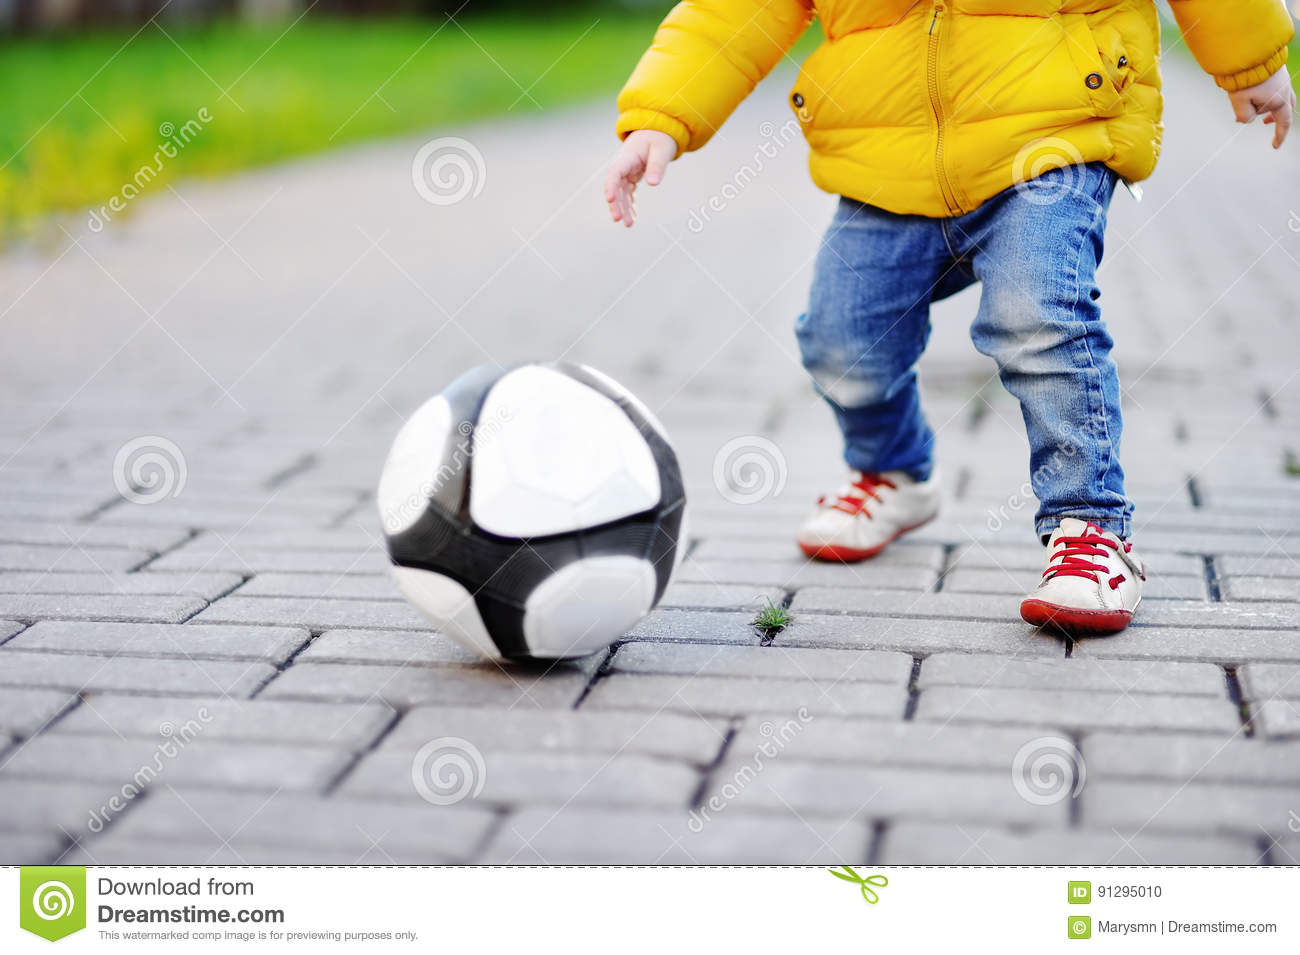 Little boy having fun playing a soccer game on sunny spring or autumn day